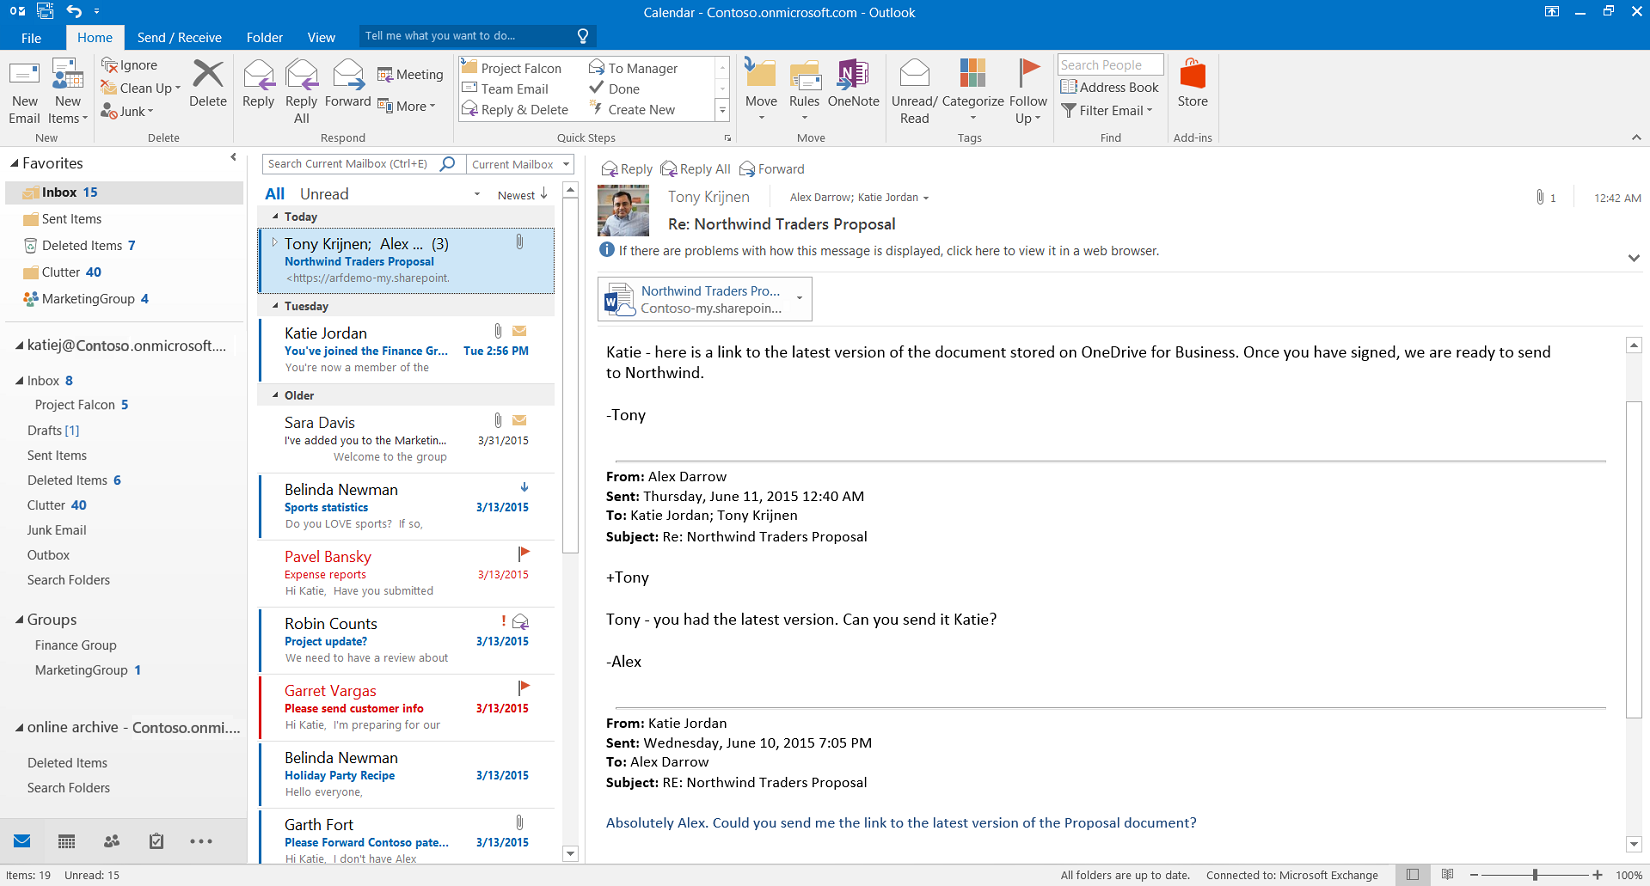 Outlook 2016 | Microsoft is working to remedy an issue ...